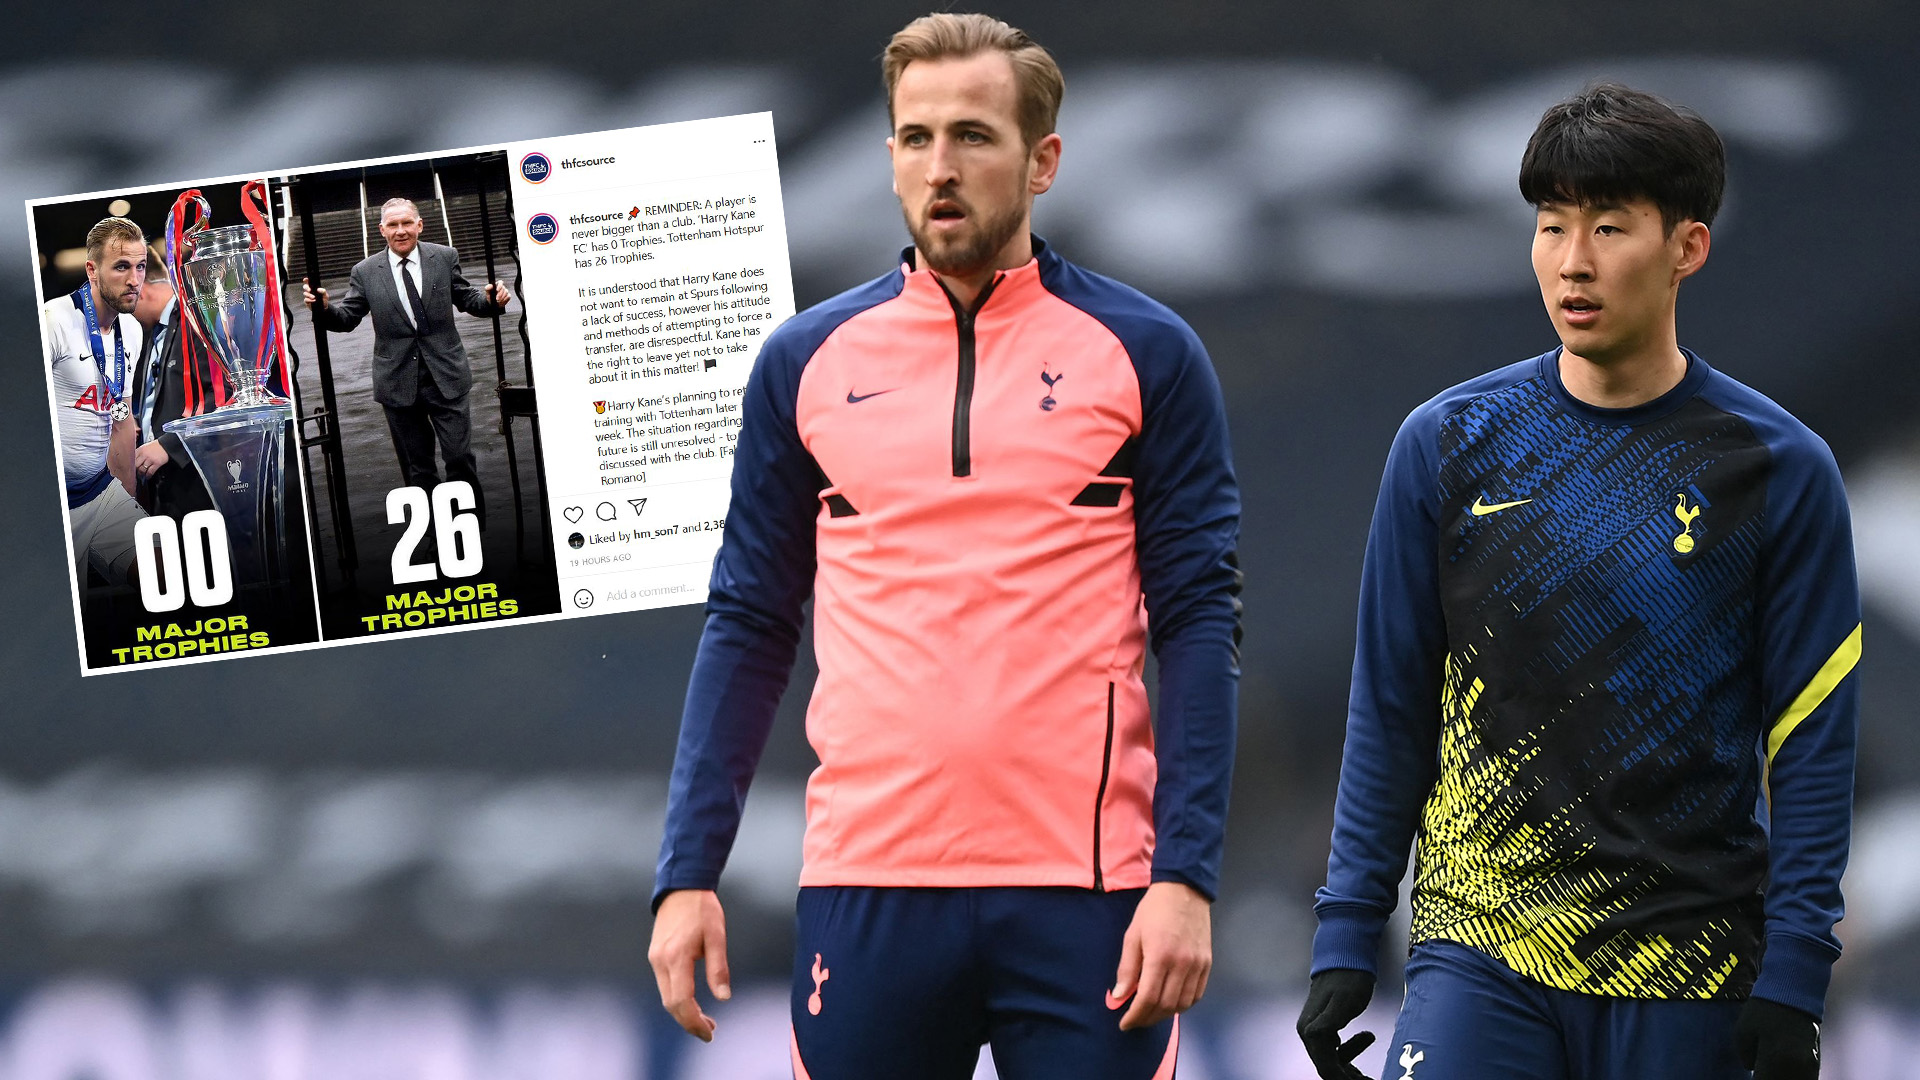 'Kane FC has 0 trophies' - Heung-Min Son 'likes' Instagram photo calling out Tottenham star after he misses training